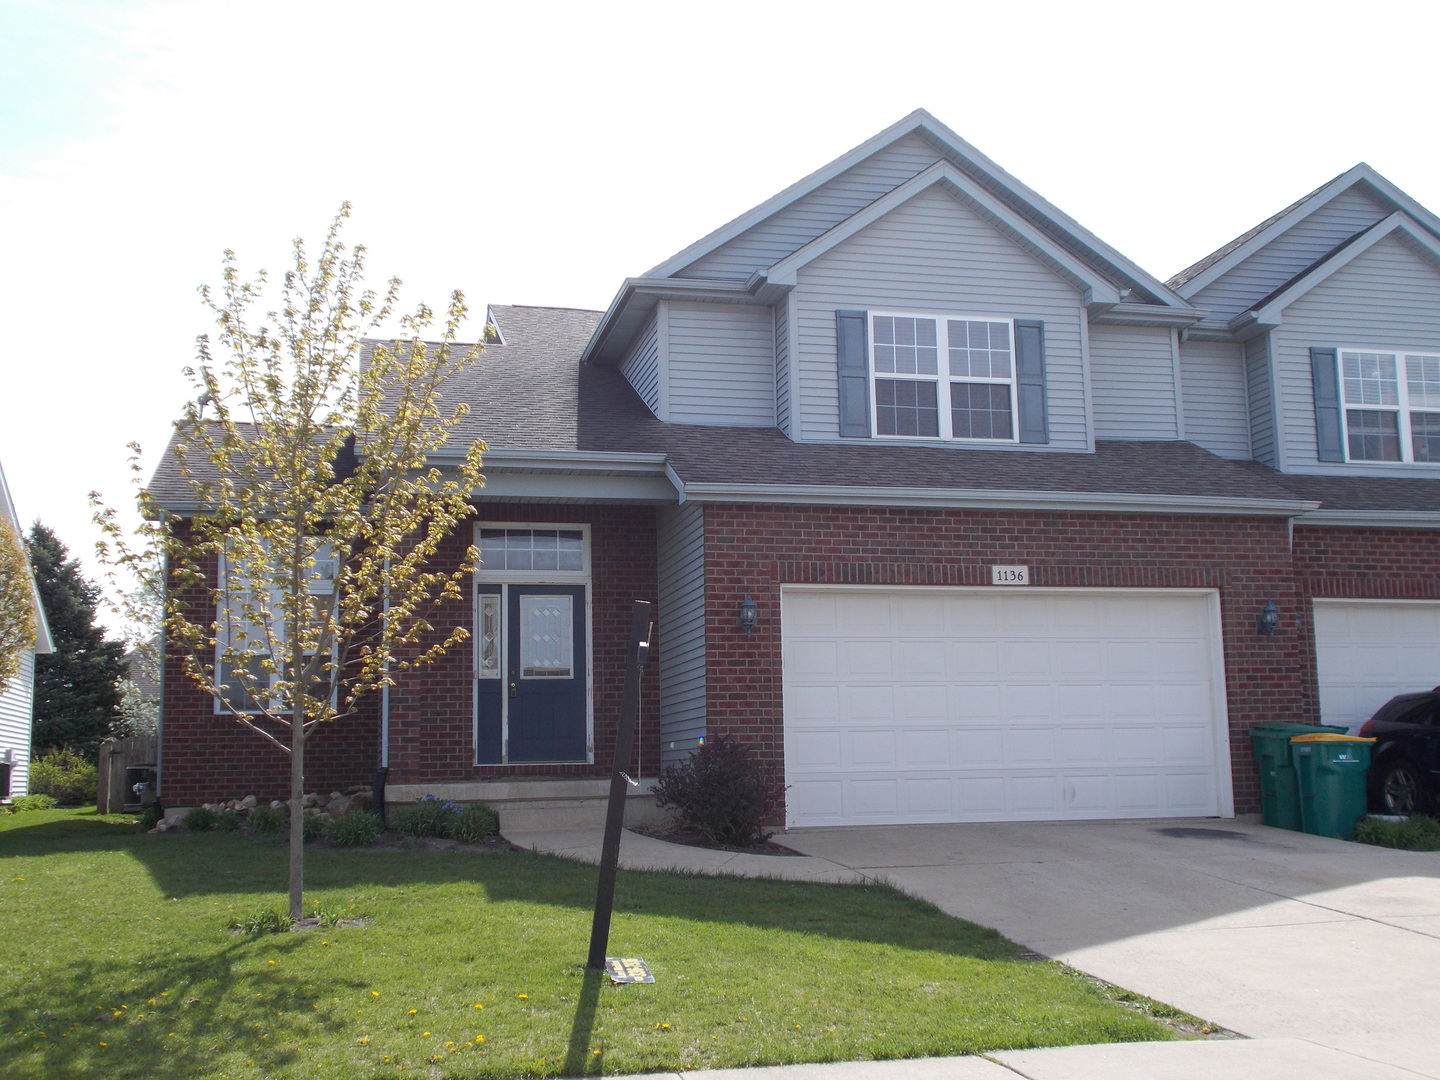 Photo for 1136 Penny Lane, Sycamore, IL 60178 (MLS # 10633493)